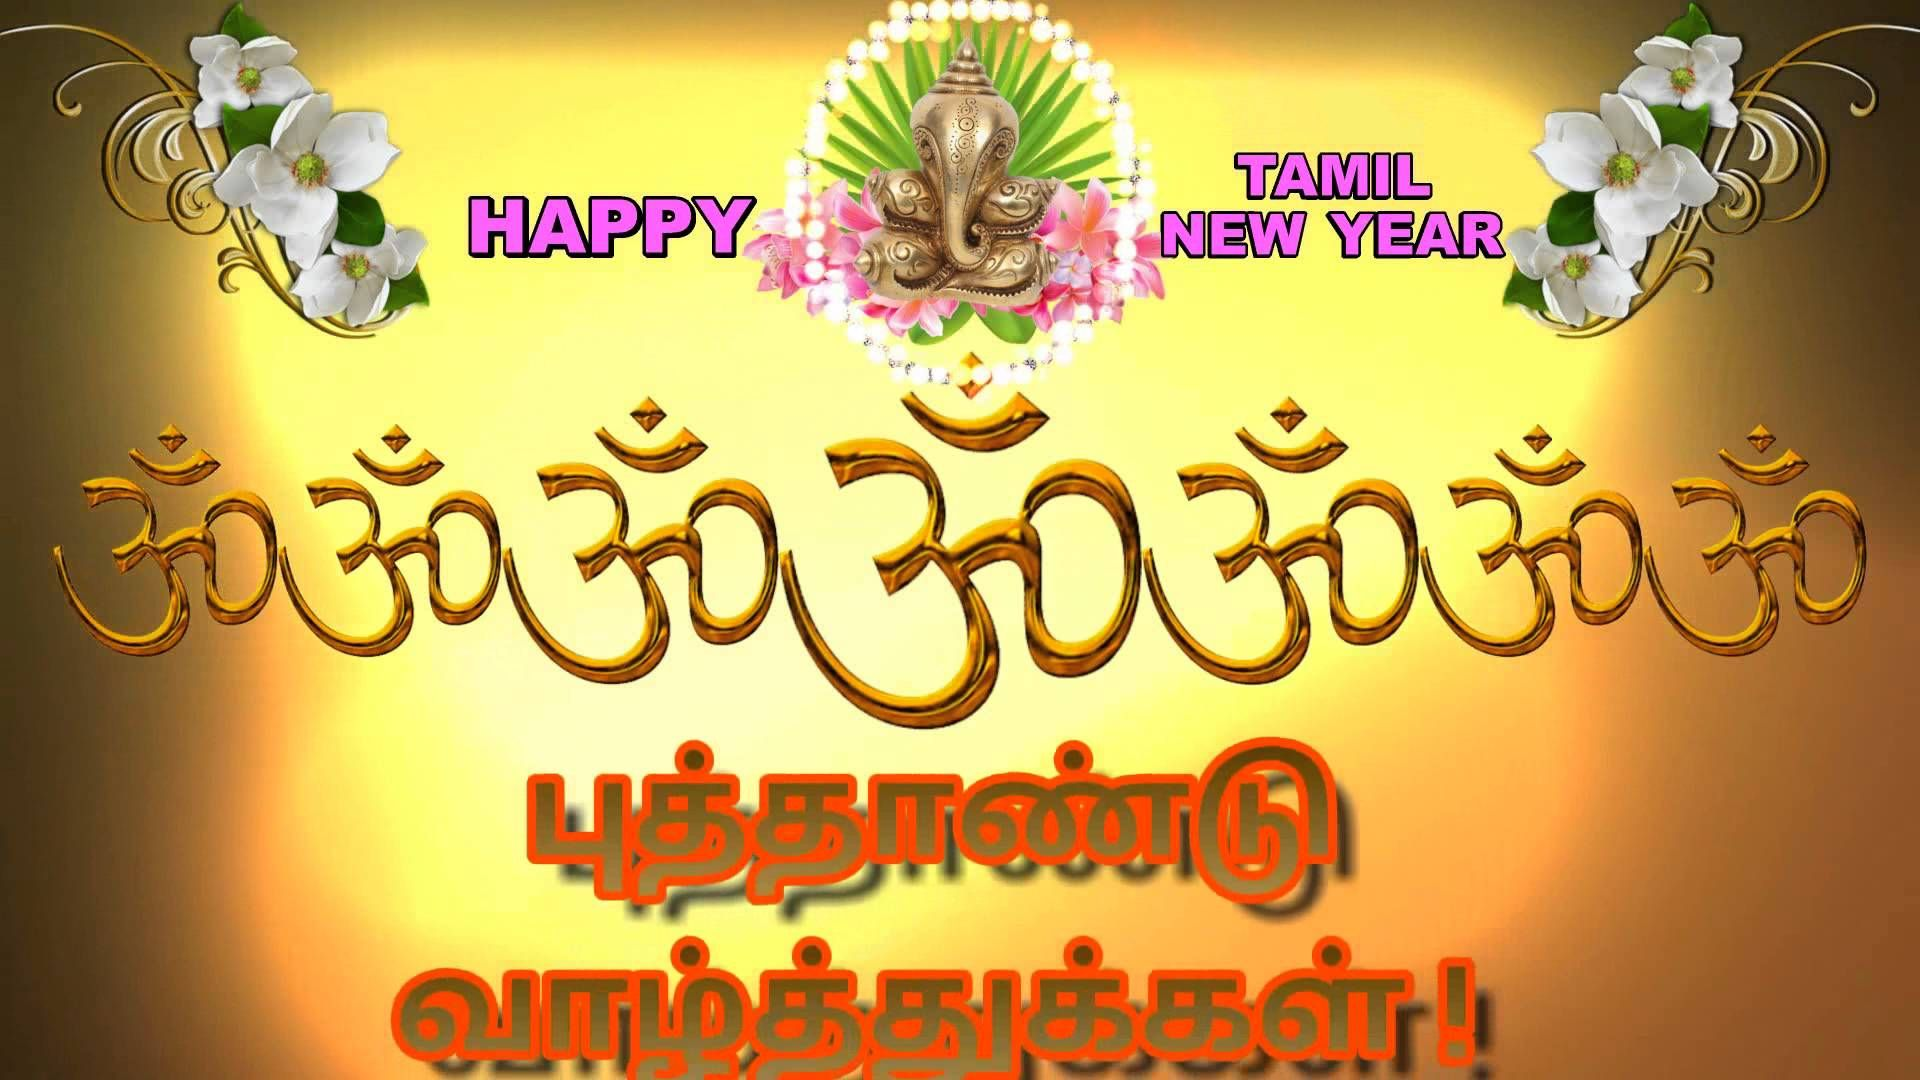 Happy Tamil New Year 2016 Tamil New Year Wishes Tamil New Year